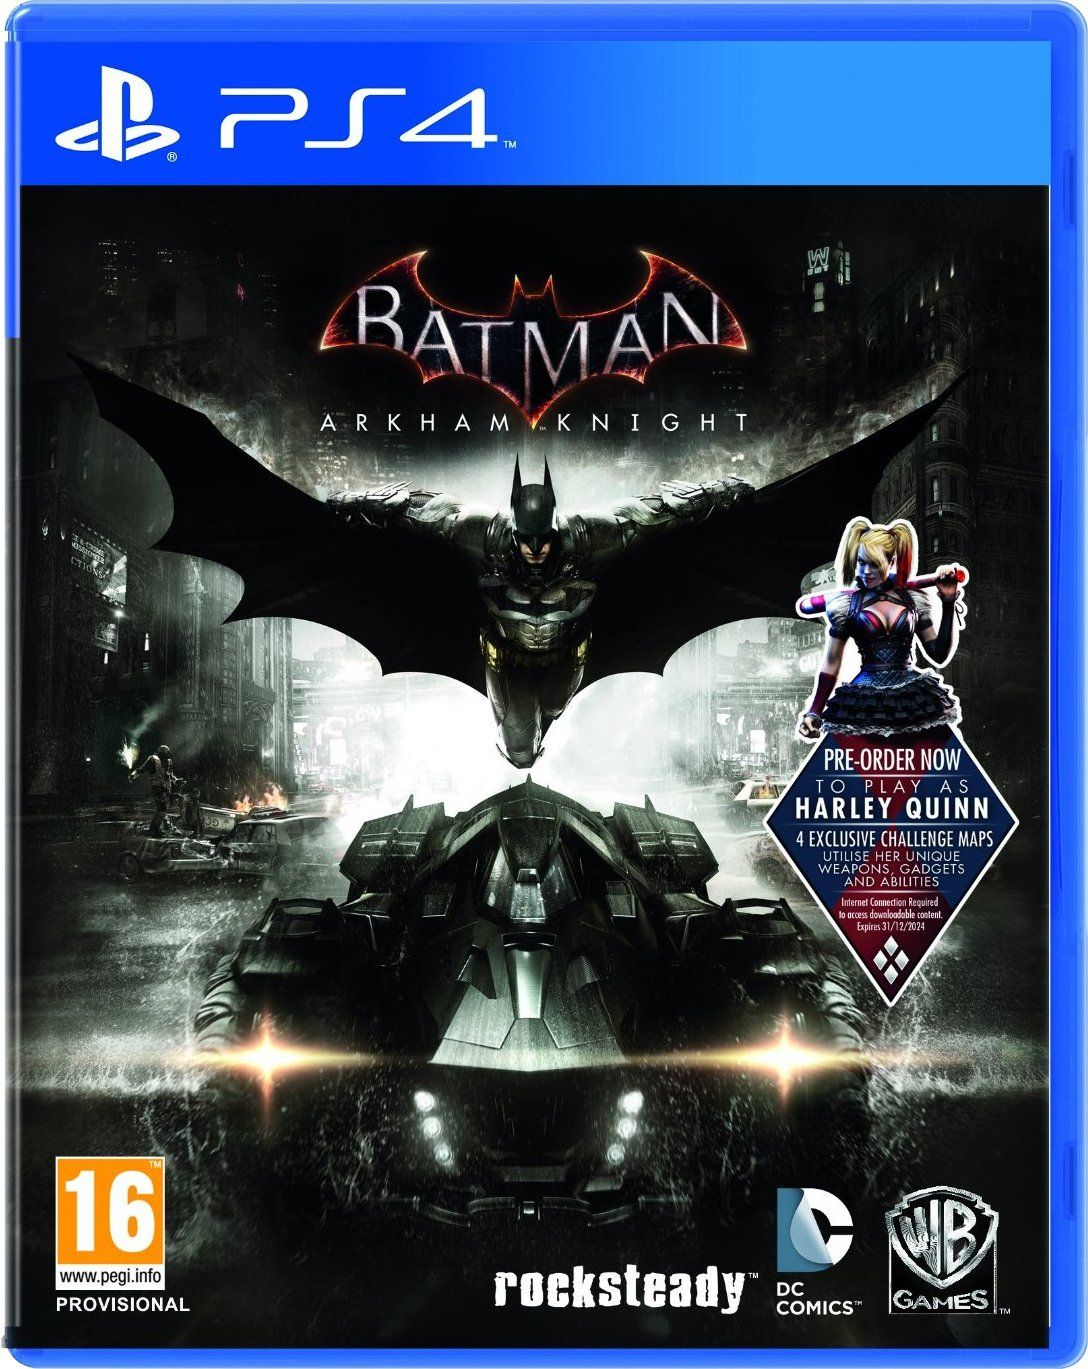 Batman Arkham Knight Ps4 Looking Forward So Play This Game Looks